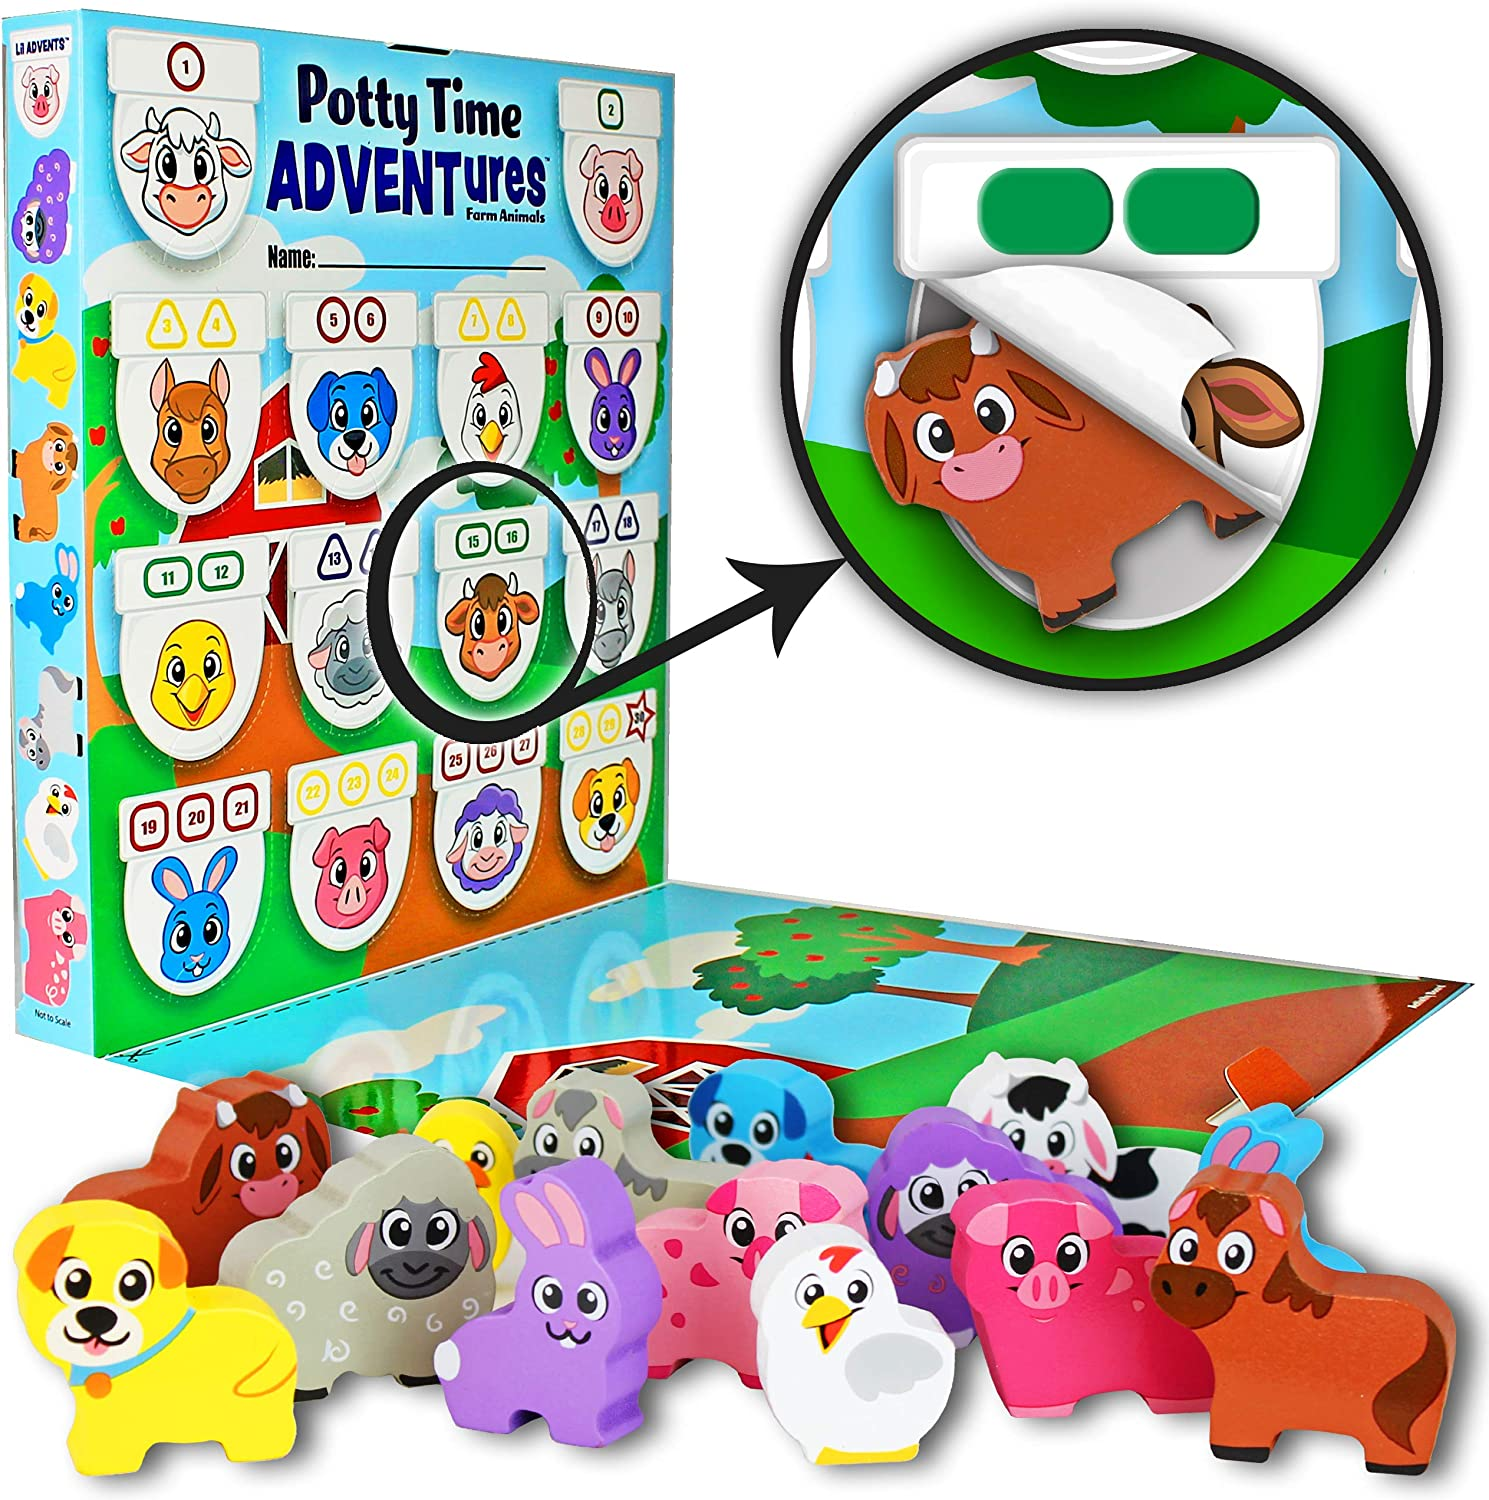 Lil ADVENTS Potty Time ADVENTures Potty Training Game - 14 Wood Block Toys, Chart, Activity Board, Stickers and Reward Badge for Toilet Training, Farm Animals